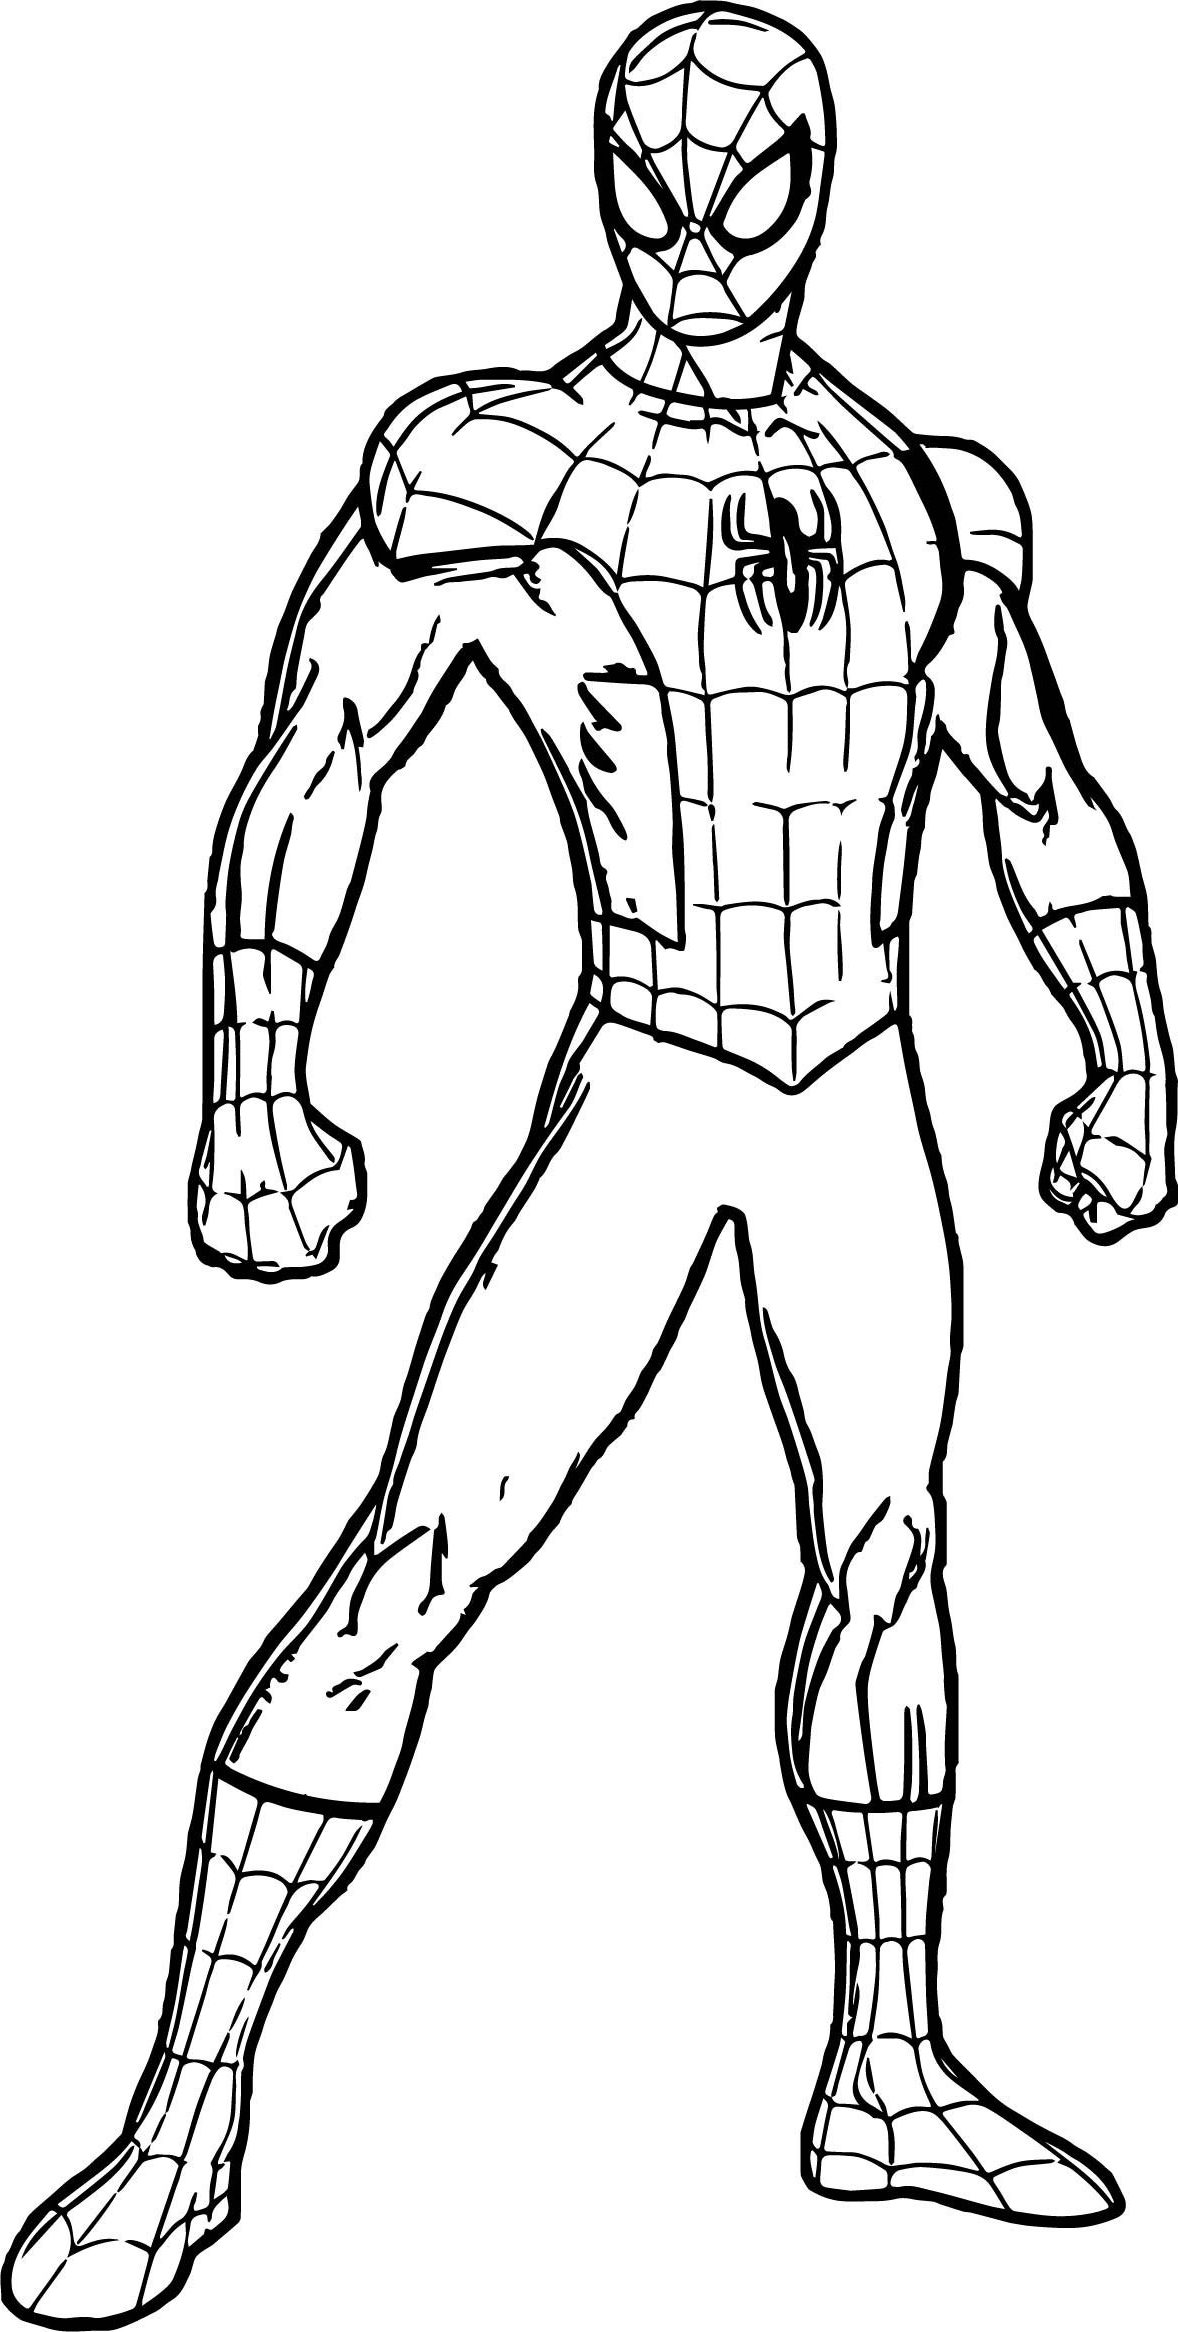 coloring spiderman for kids print download spiderman coloring pages an enjoyable spiderman coloring for kids